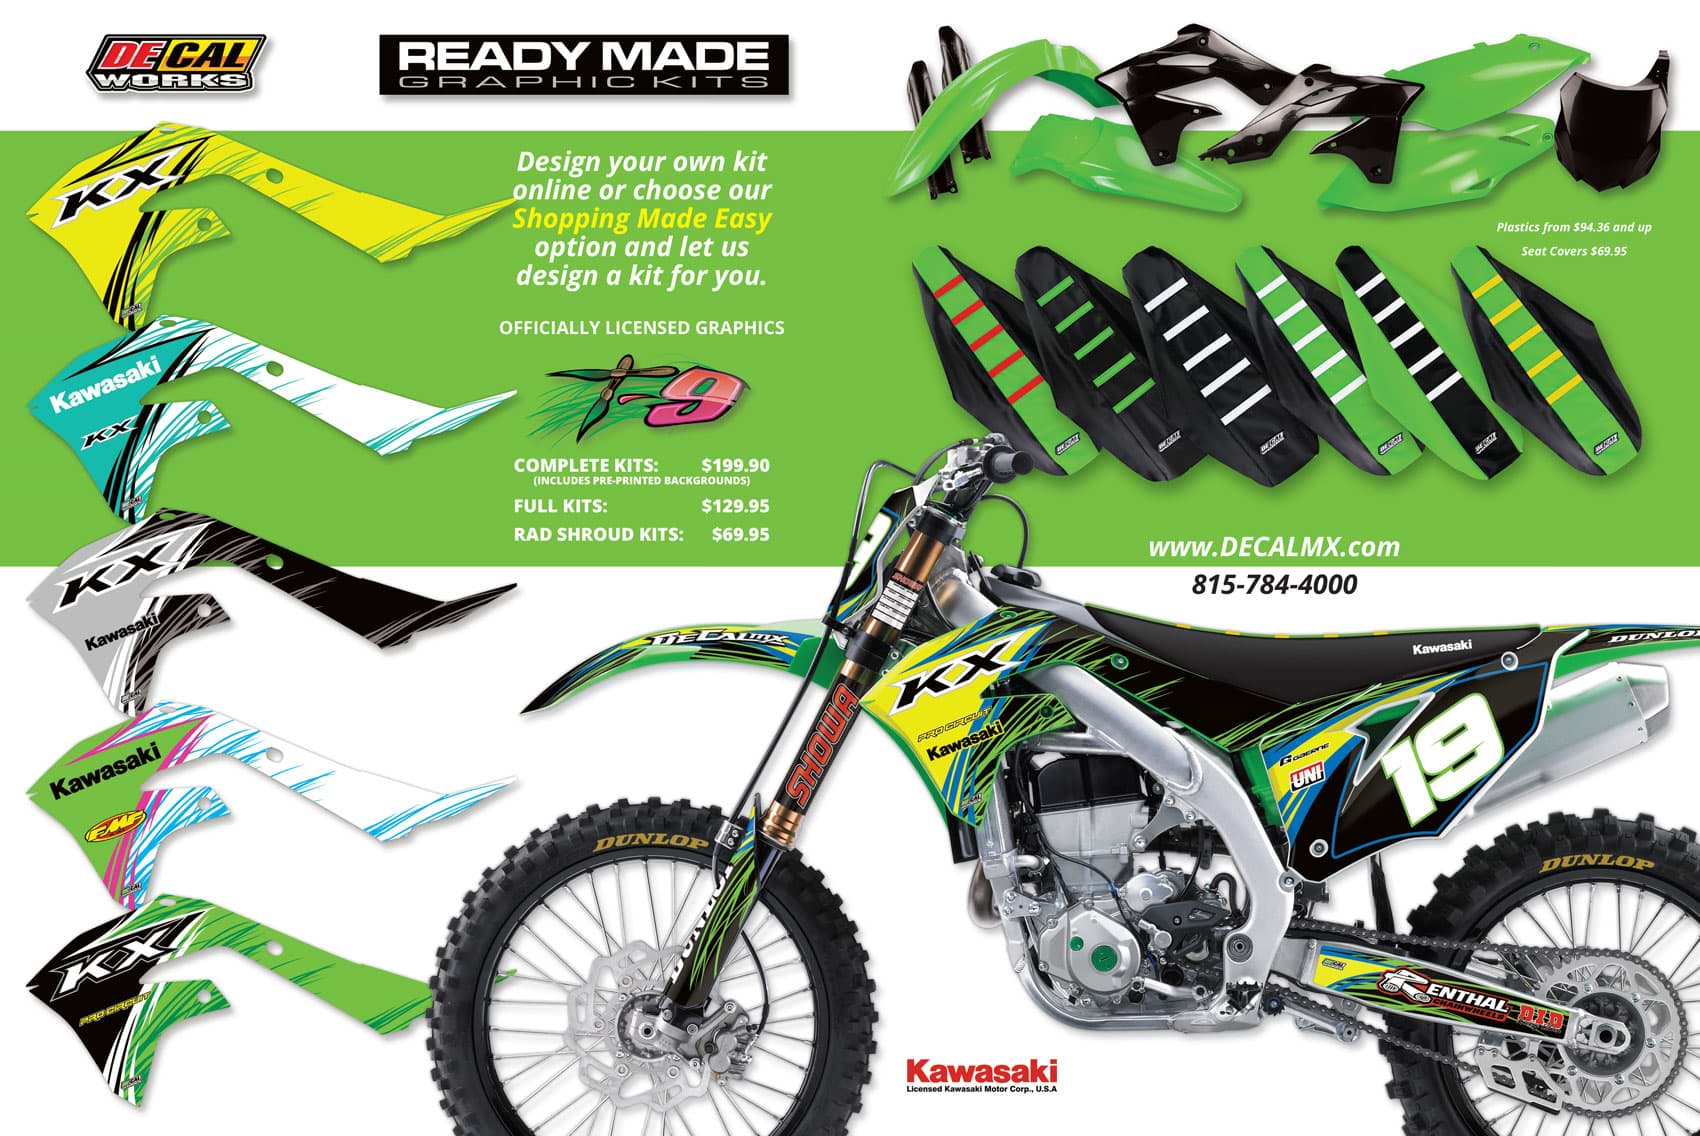 Racer X November 2019 - Decal Works Advertisement